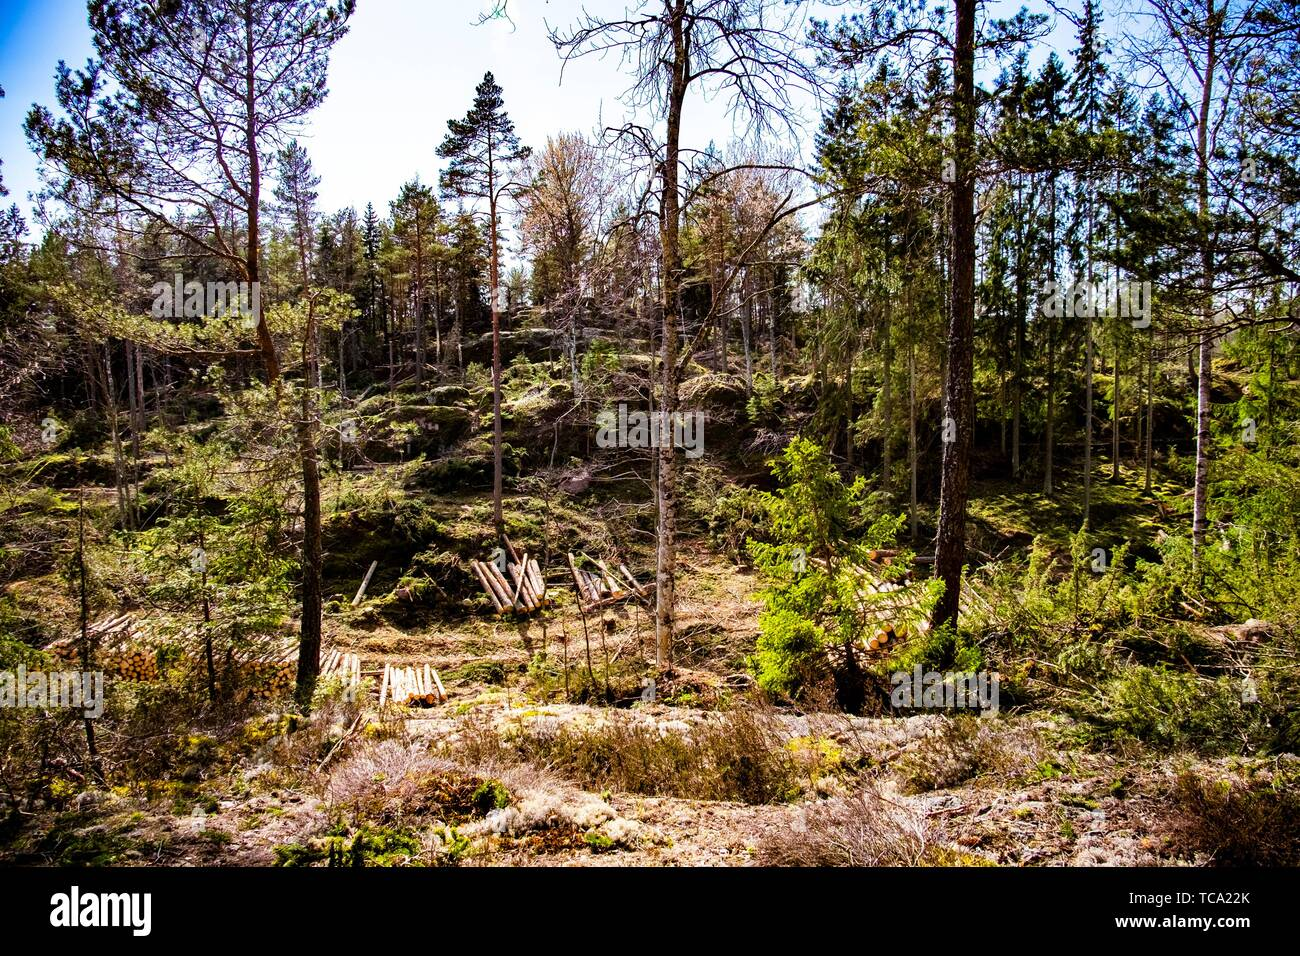 Forest industry in Sweden. - Stock Image